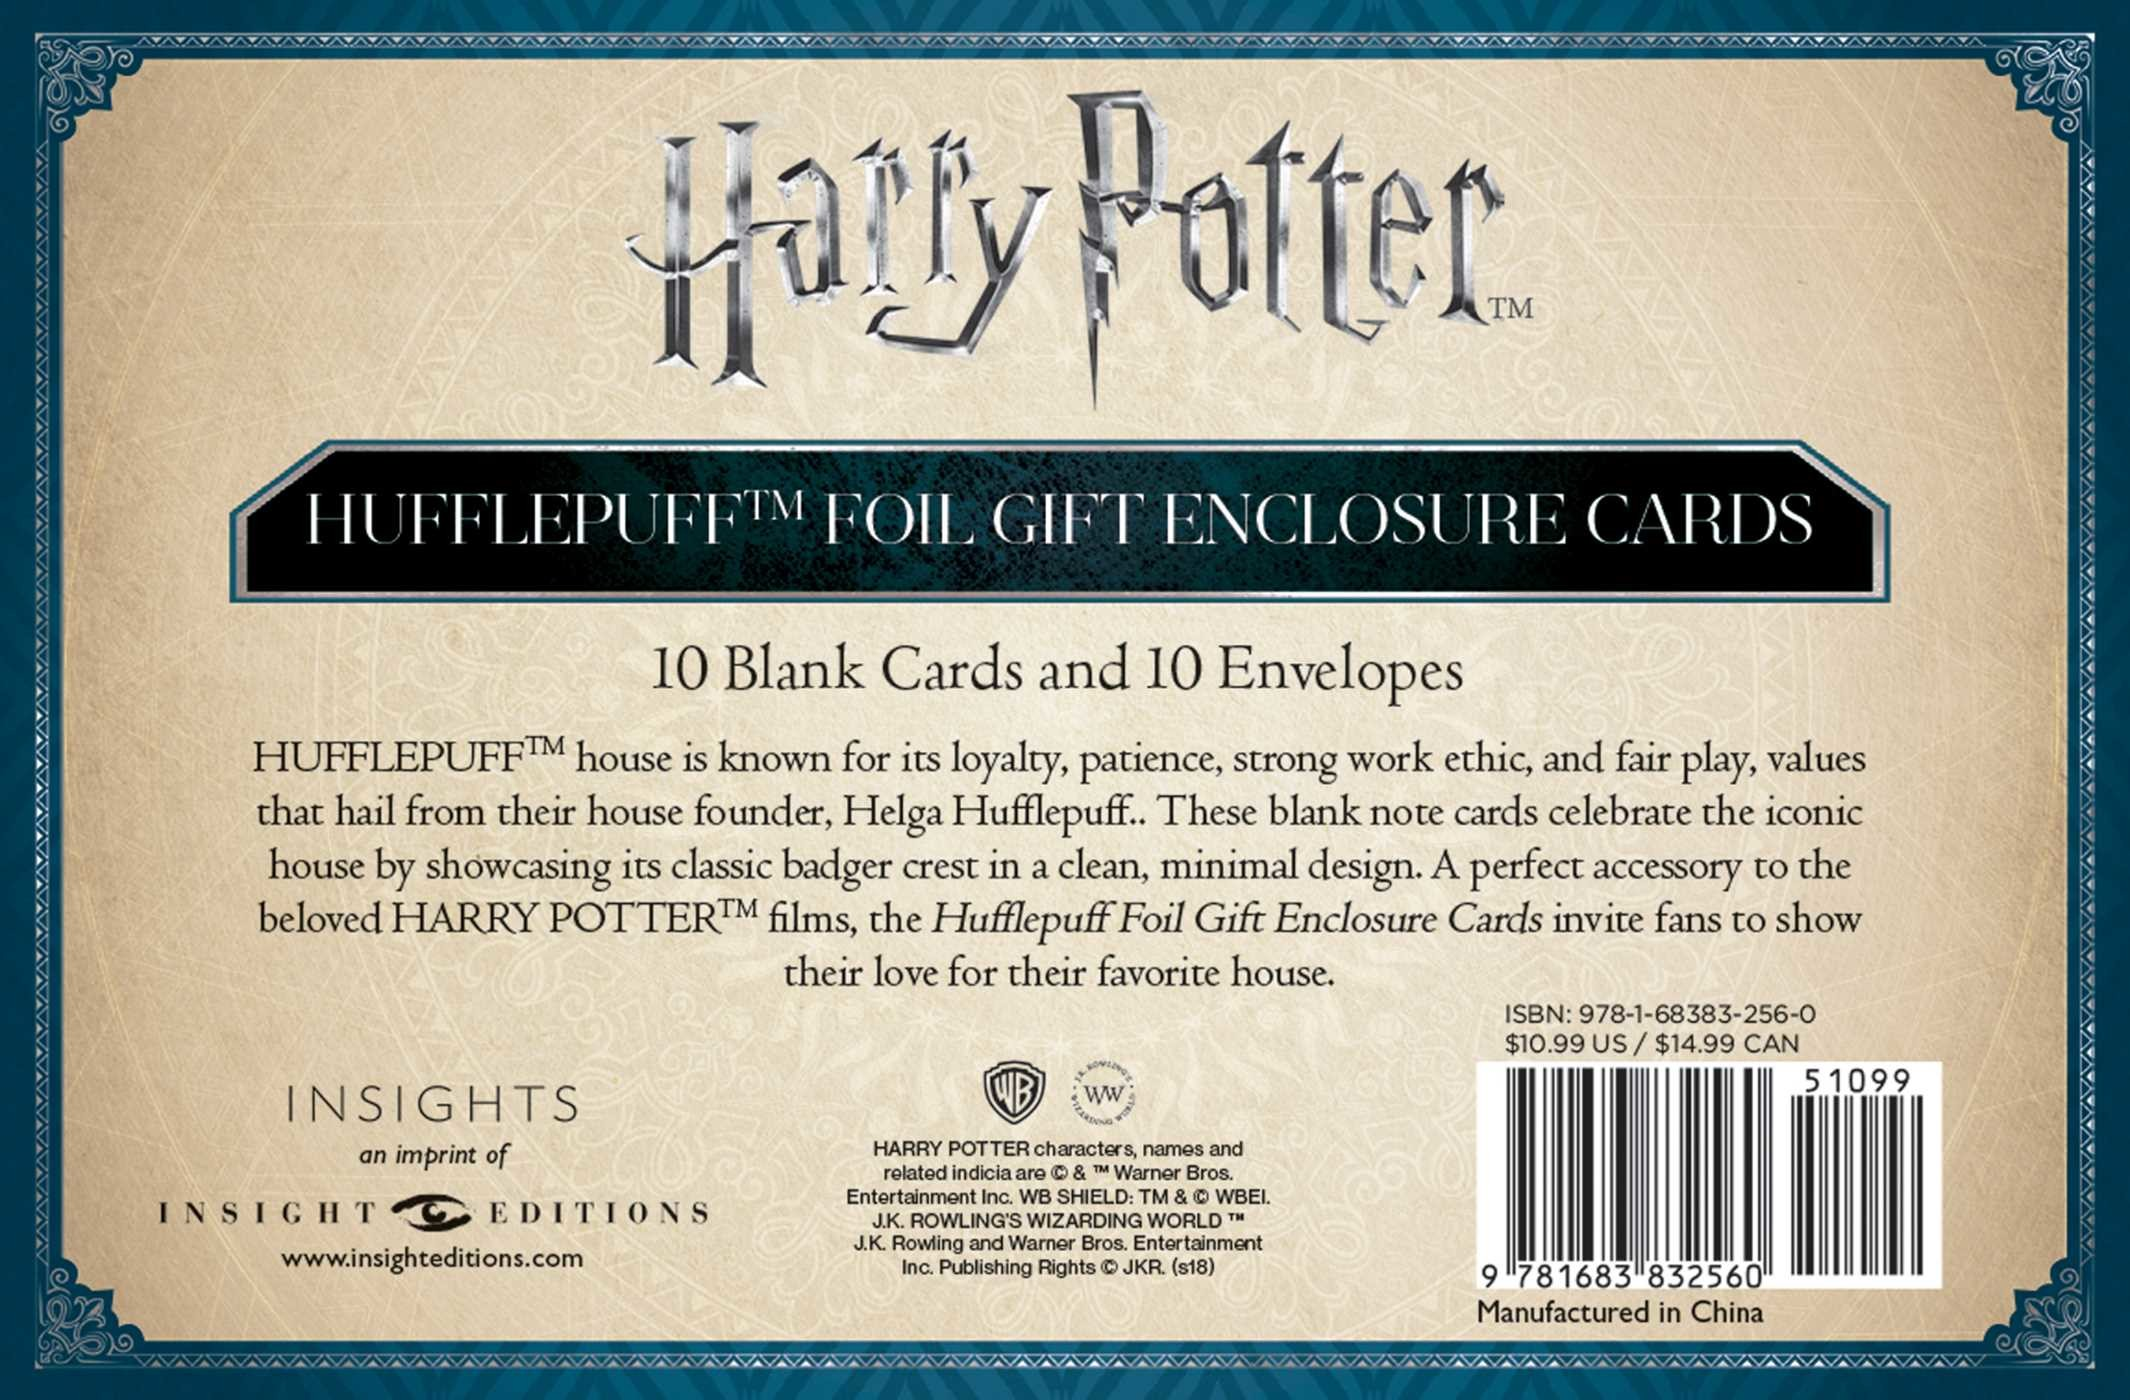 Harry potter hufflepuff crest foil gift enclosure cards set of 10 9781683832560.in02